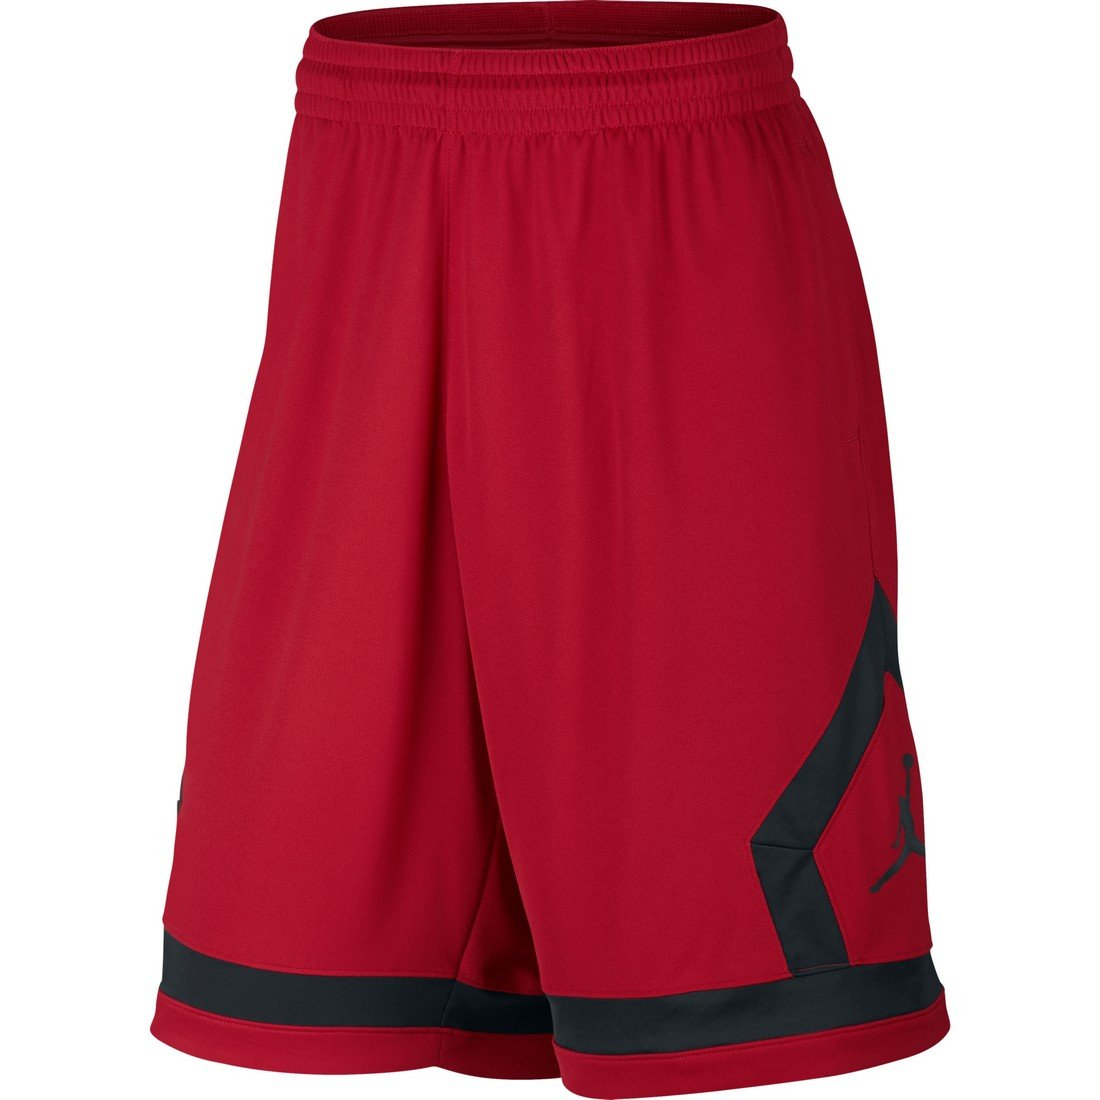 4568c44dd857 Amazon.com  Nike mens FLIGHT DIAMOND SHORT 799543-687 S - GYM  RED BLACK BLACK  Sports   Outdoors